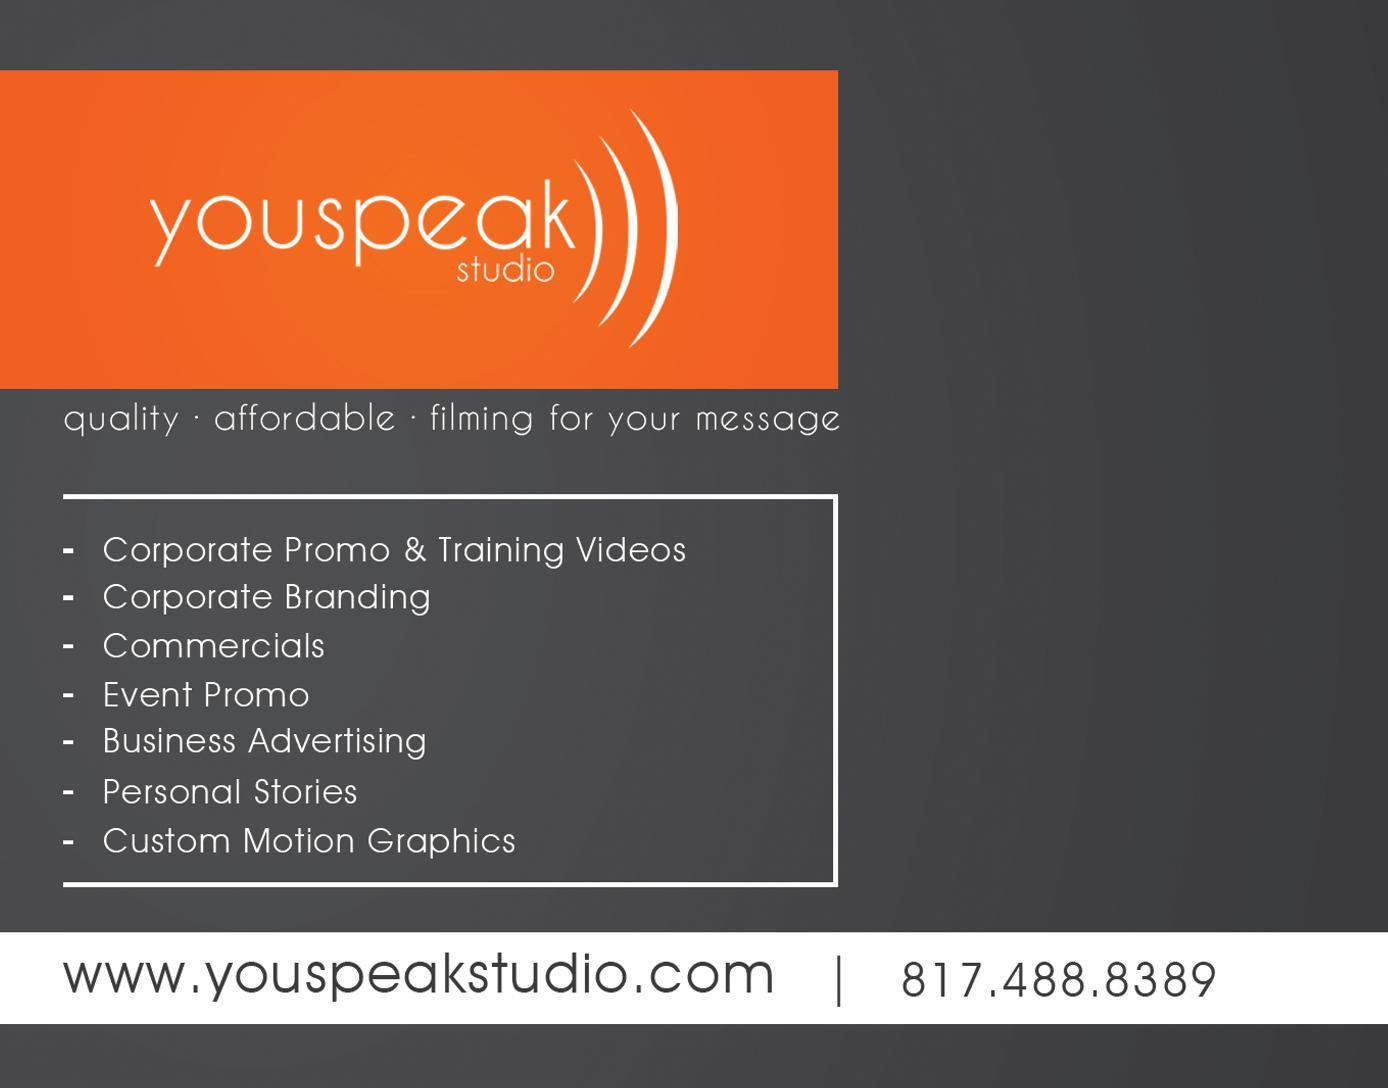 YouSpeak Studio